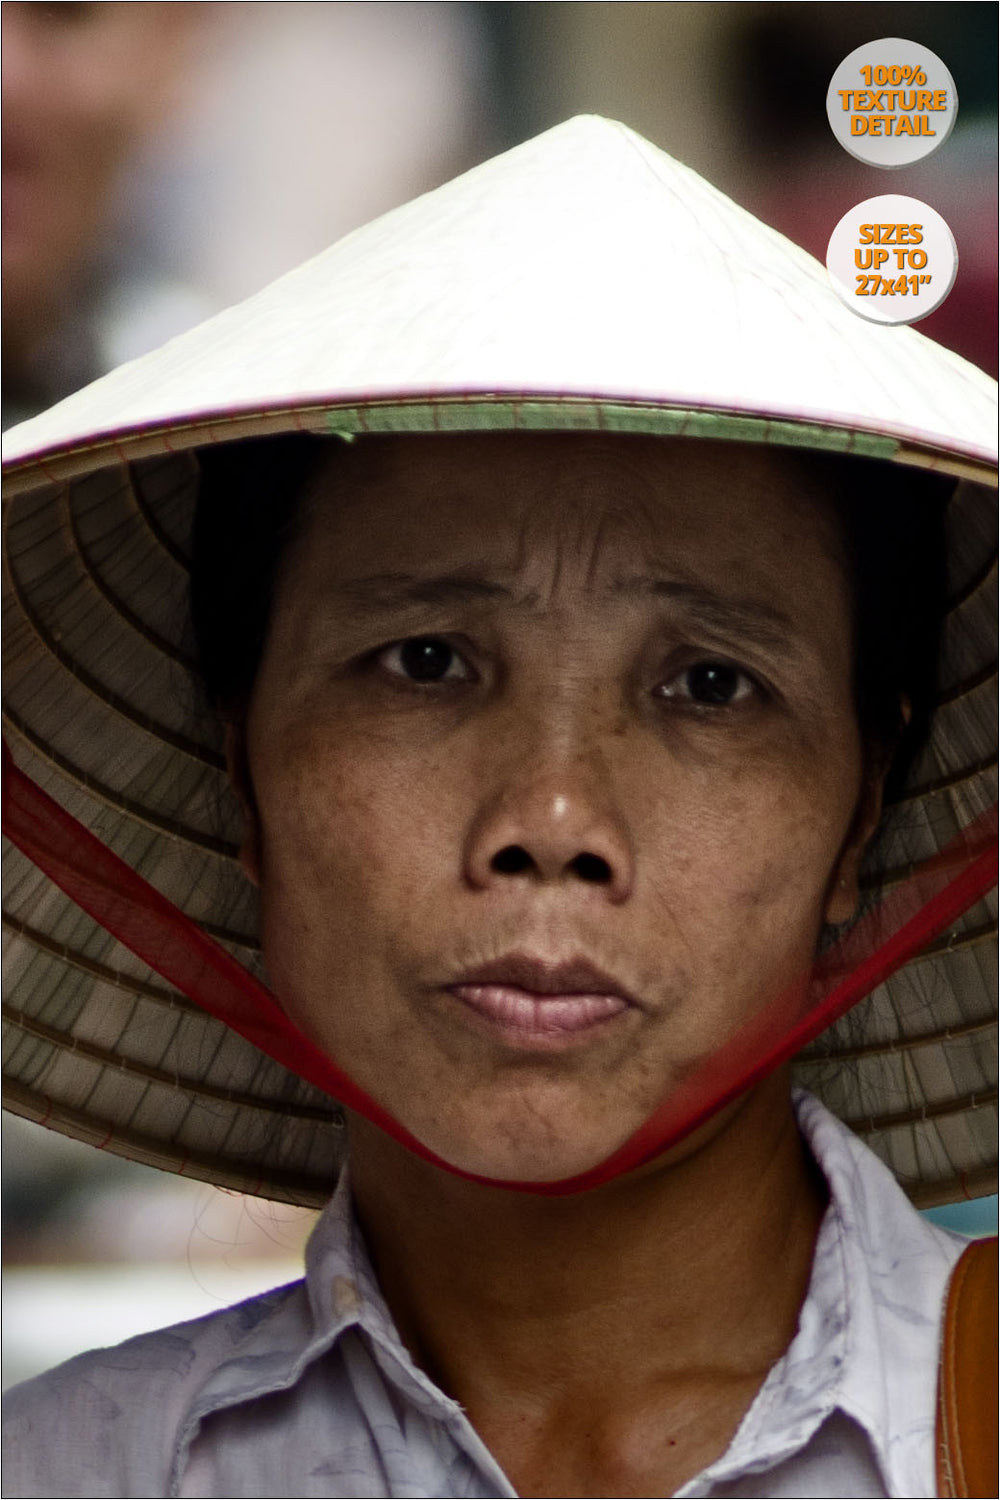 Woman selling hats in Hanoi old quarters. | 100% Magnification Detail View of the Print.